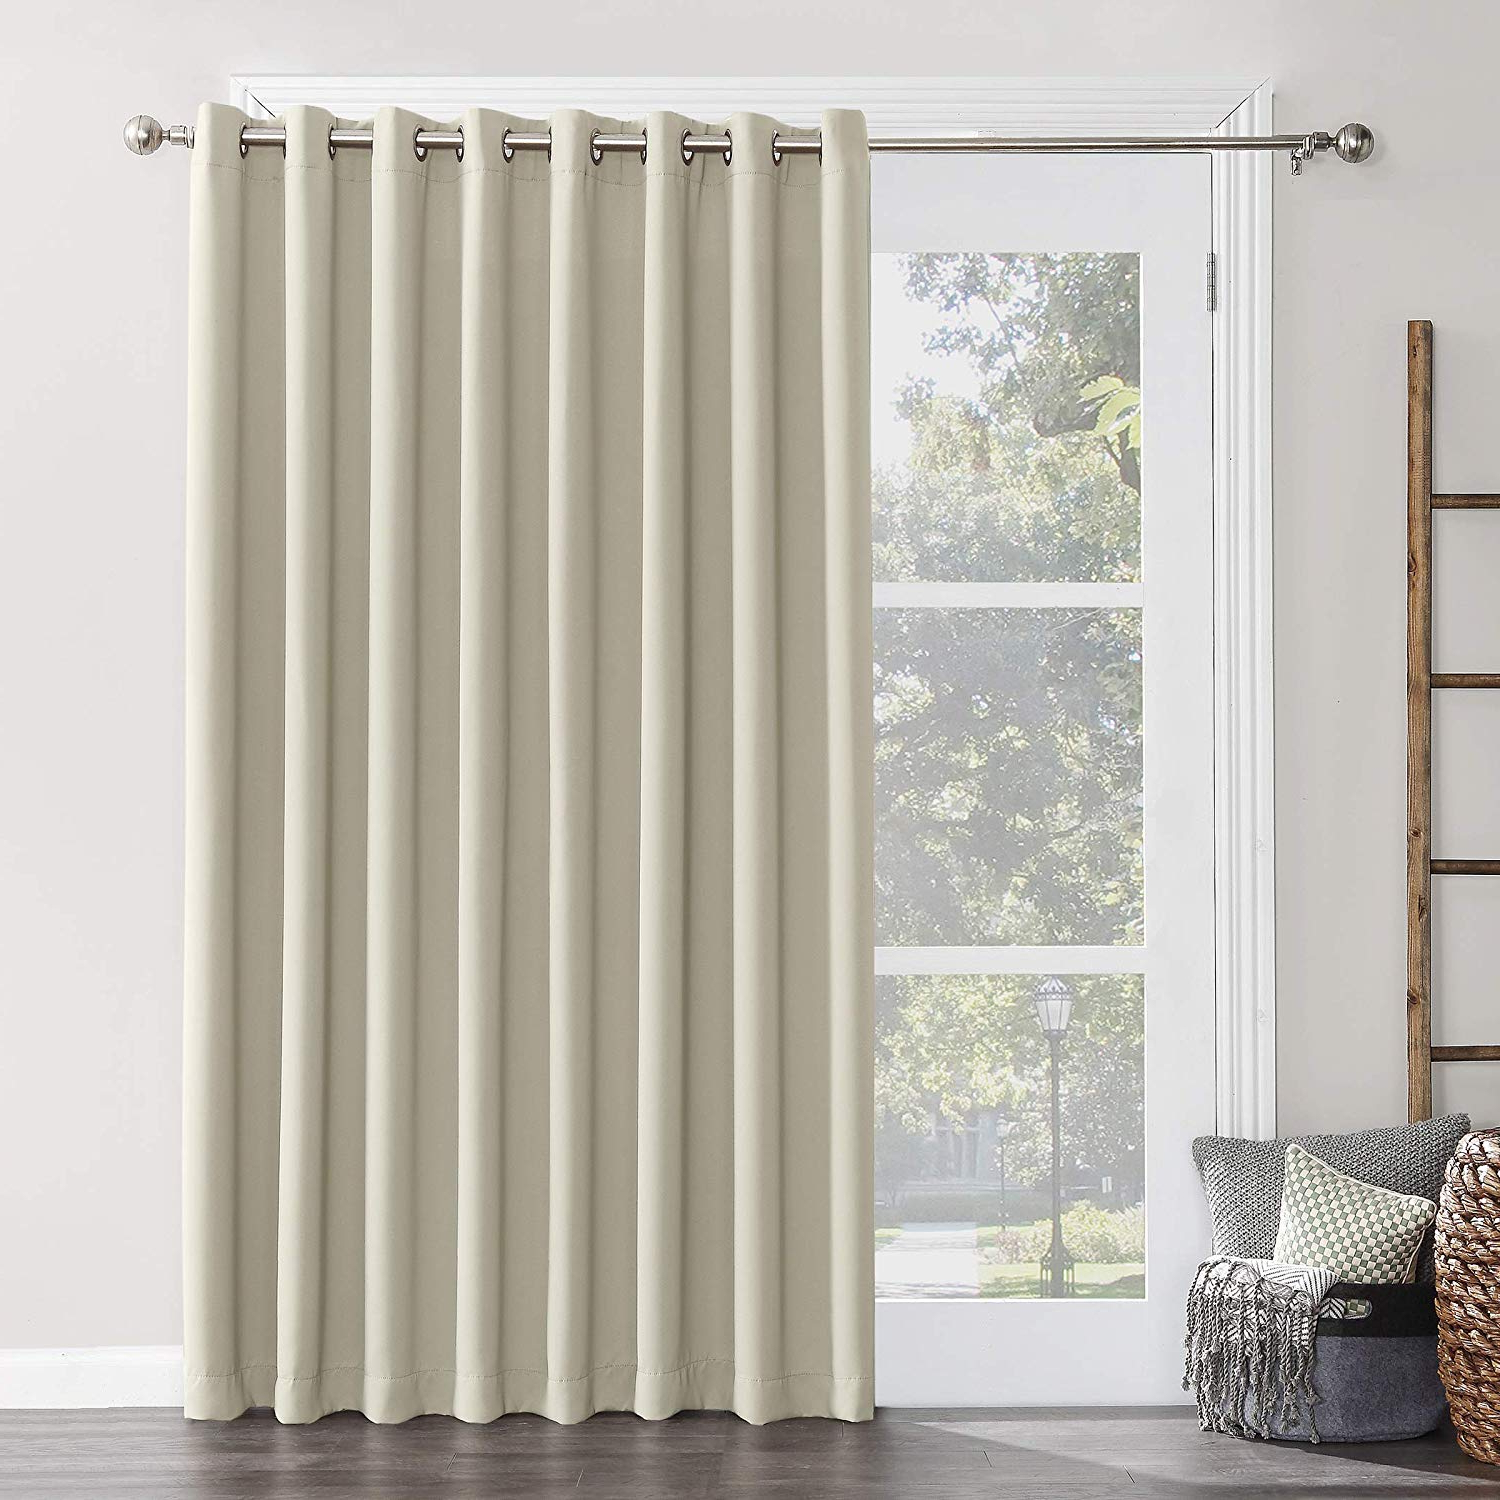 "Sun Zero Easton Extra Wide Blackout Sliding Patio Door Curtain Panel With Pull Wand, 100"" X 84"", Pearl Pertaining To Most Up To Date Grommet Blackout Patio Door Window Curtain Panels (View 8 of 20)"